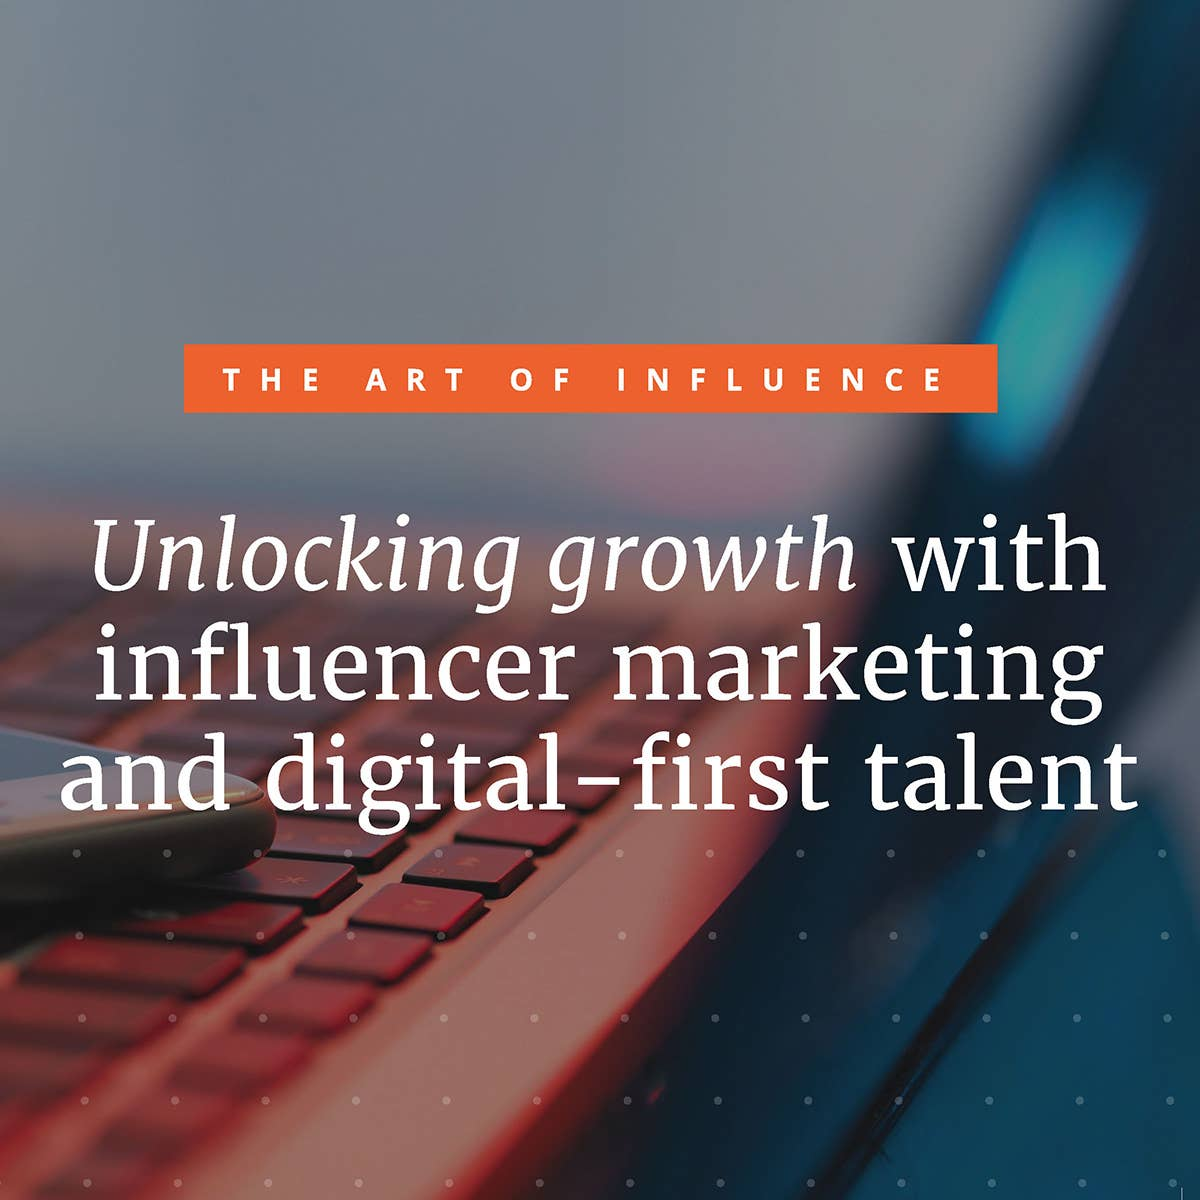 The Art of Influence: Unlocking growth with influencer marketing and digital-first talent